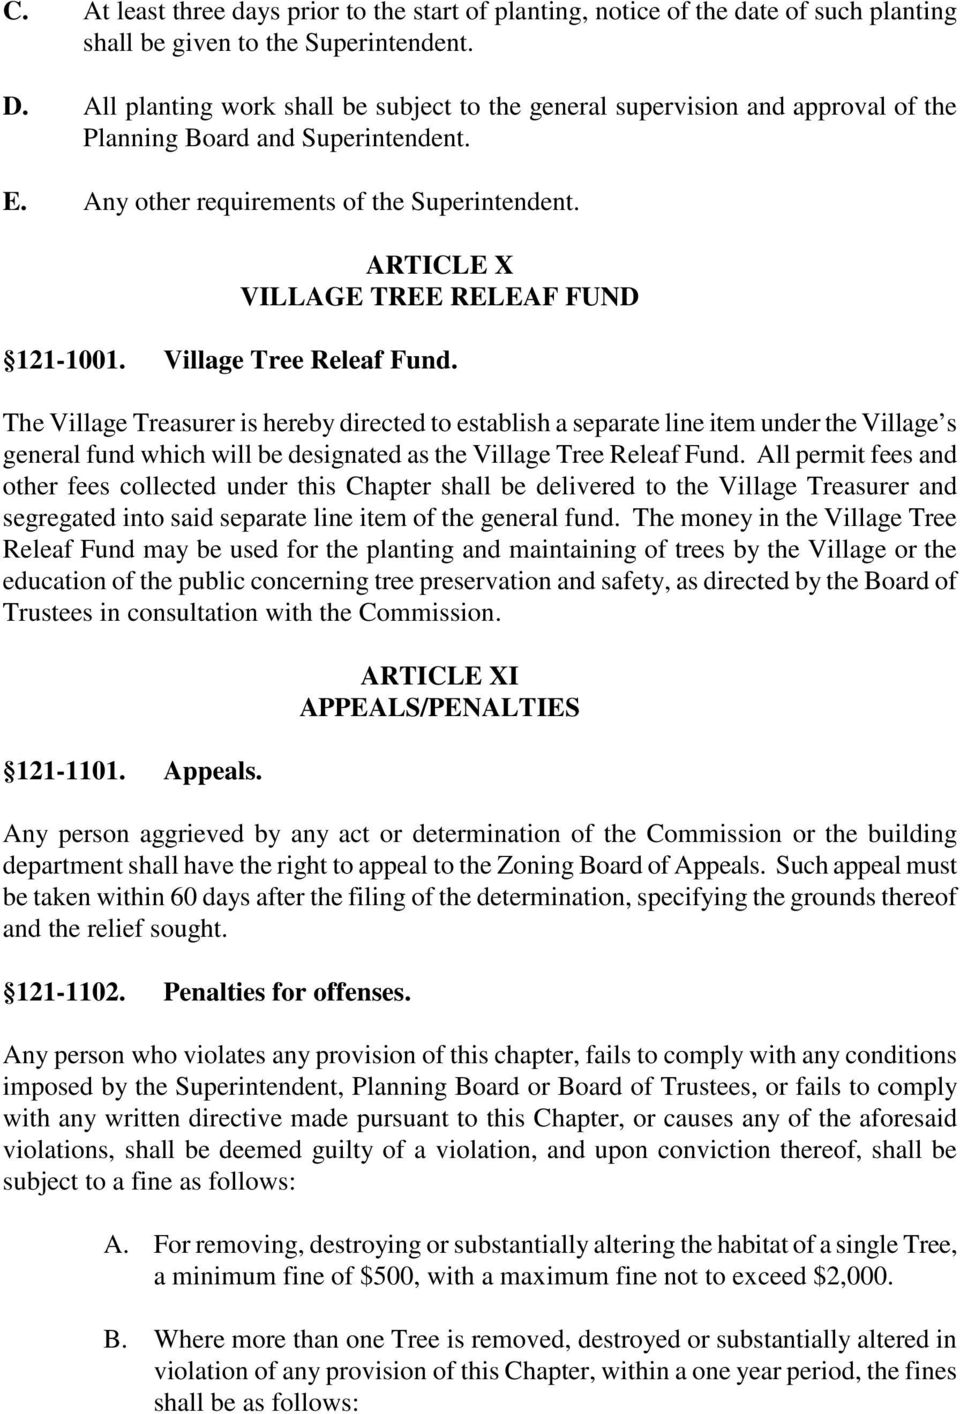 ARTICLE X VILLAGE TREE RELEAF FUND 121-1001. Village Tree Releaf Fund.